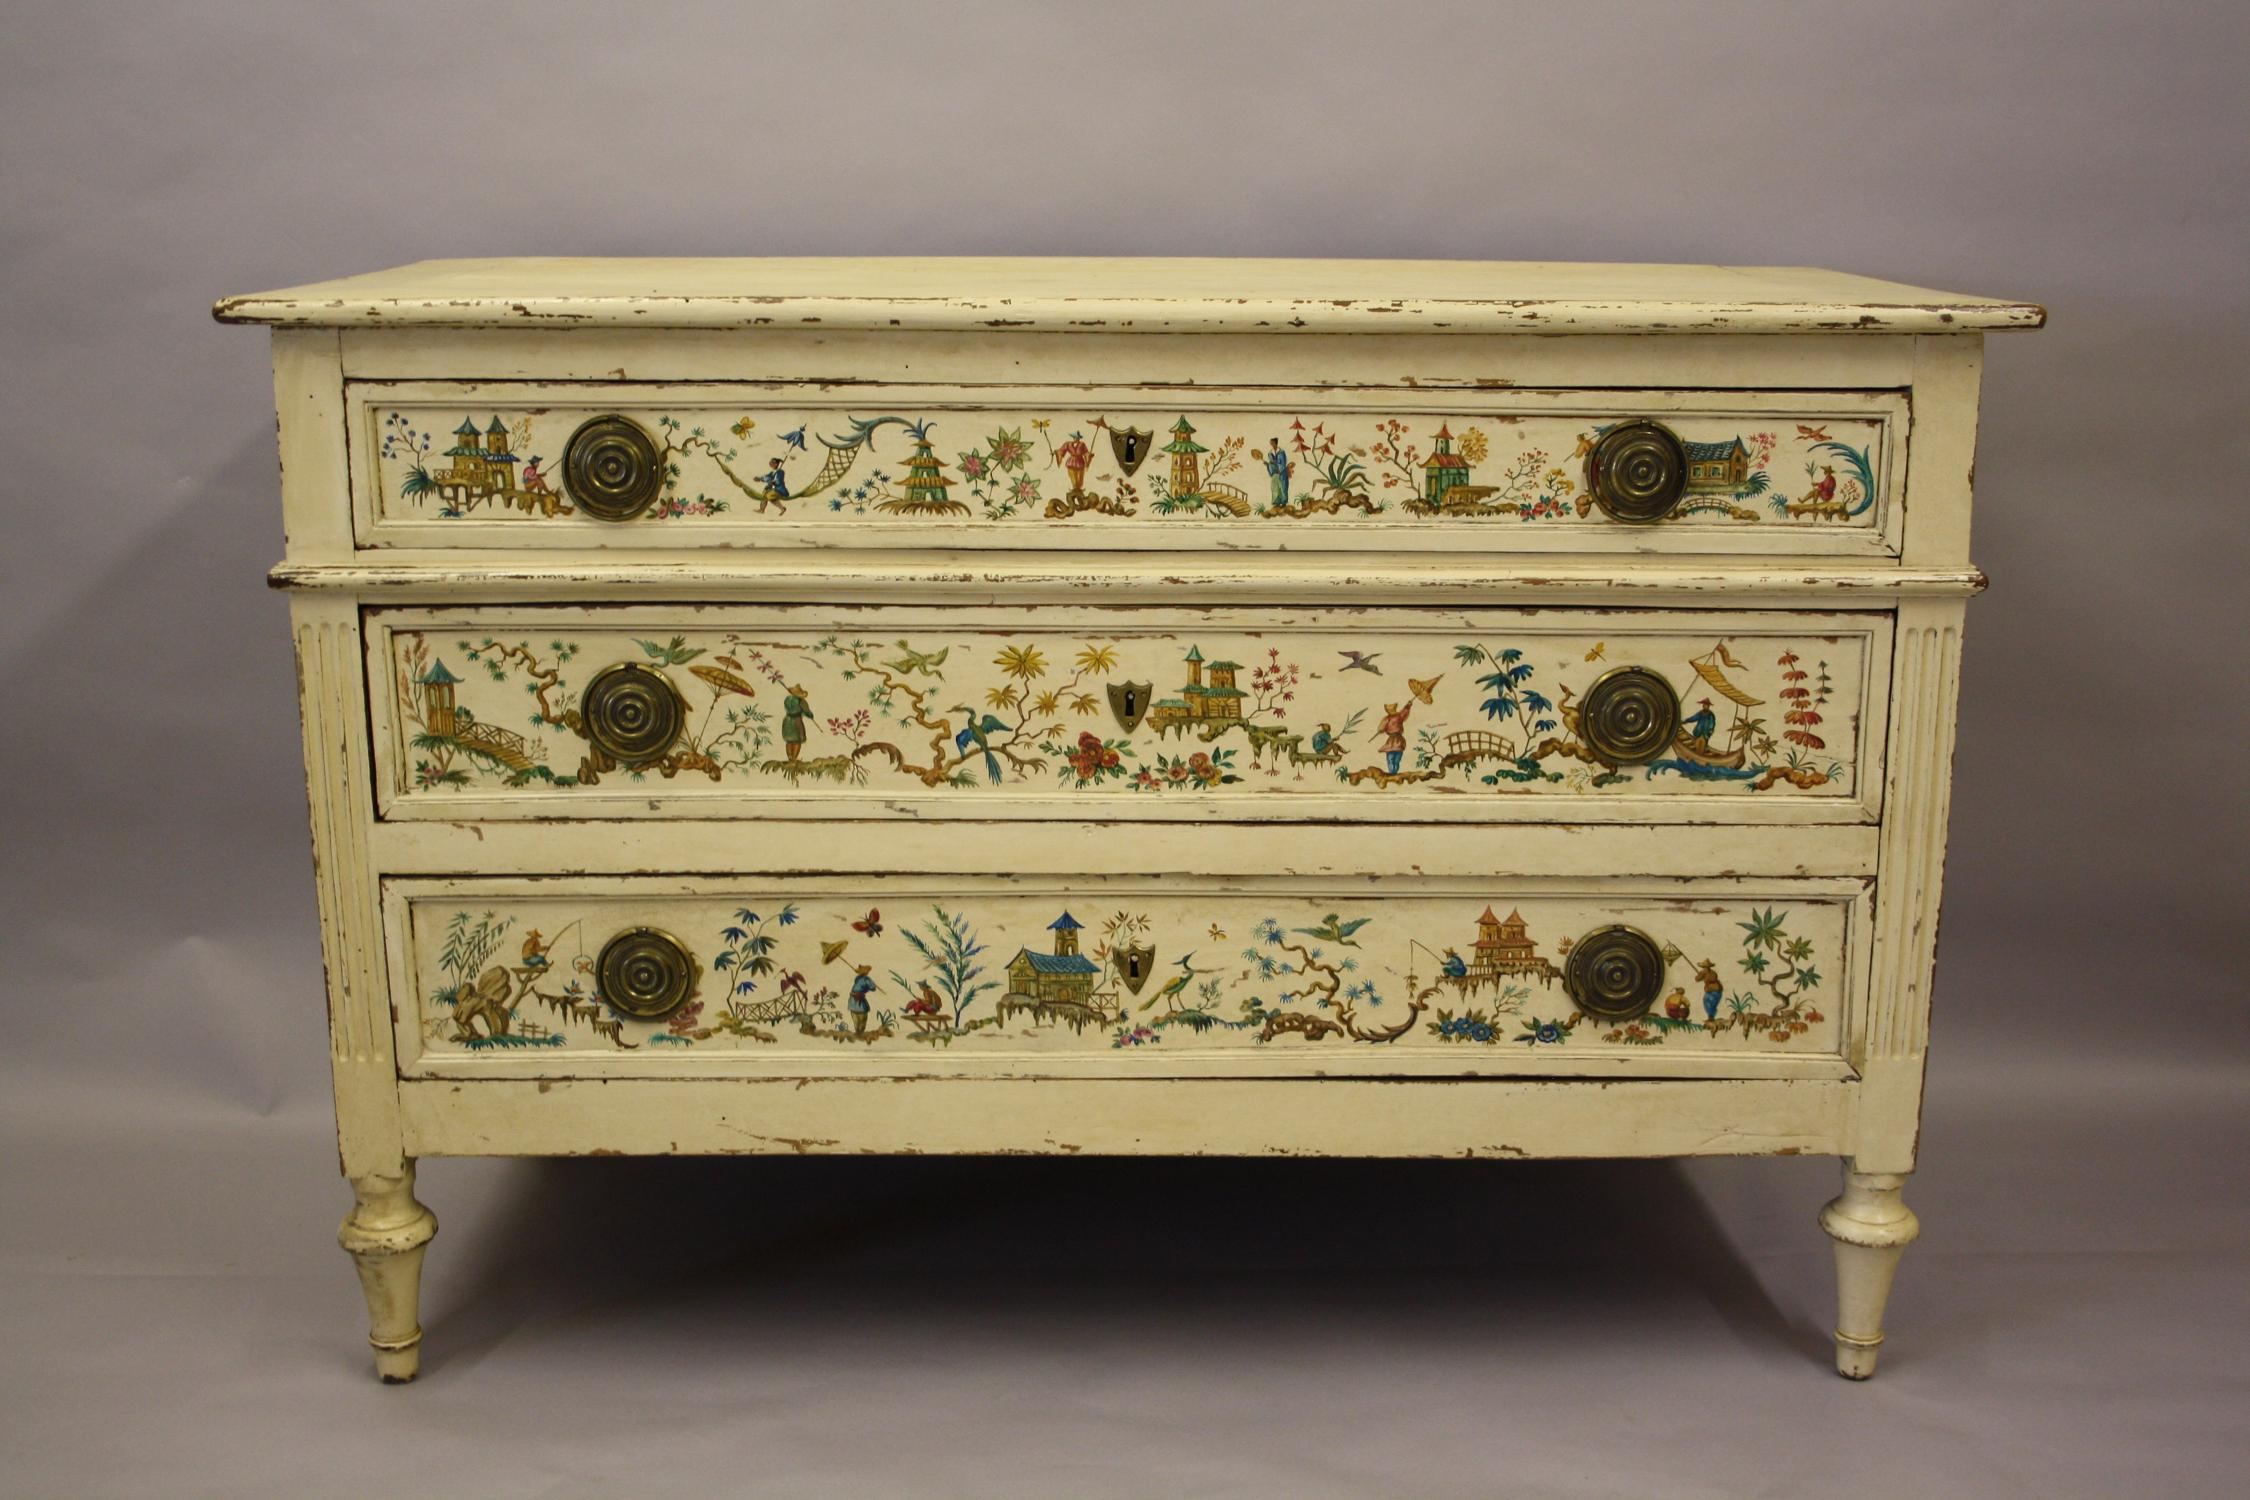 Colourful Chinoiserie chest of drawers